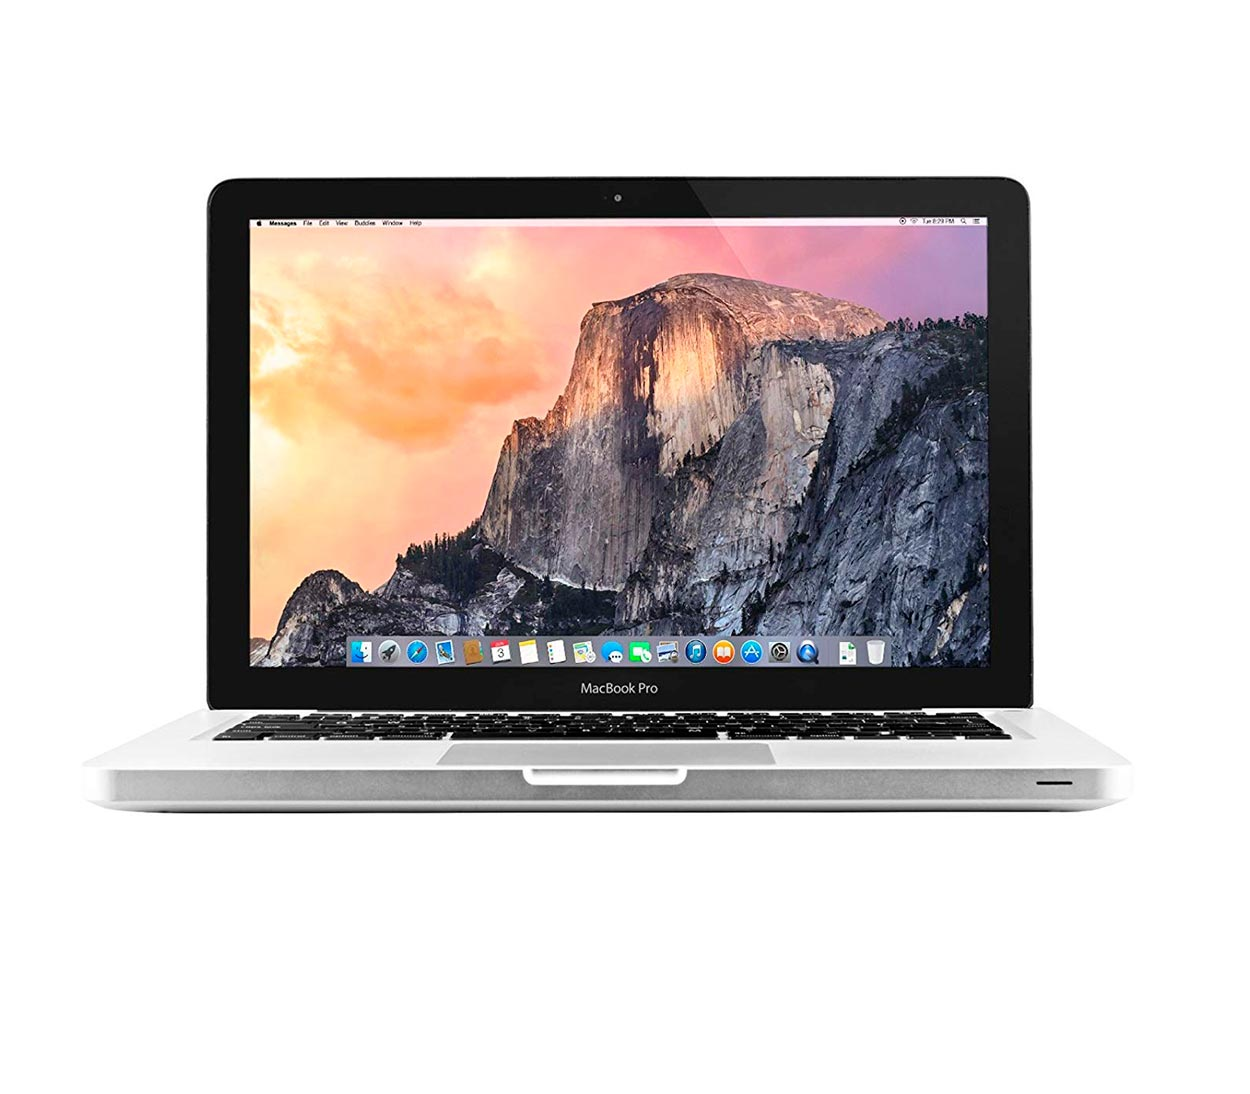 لپ تاپ استوک اپل (مک بوک پرو) مدل 15 اینچ Apple MacBook Pro Late 2011 با مشخصات i7-8GB-256GB-SSD-2GB-AMD-Radeon-HD-6750laptop-stock-apple-model-MacBook-pro-late-2011-15inch